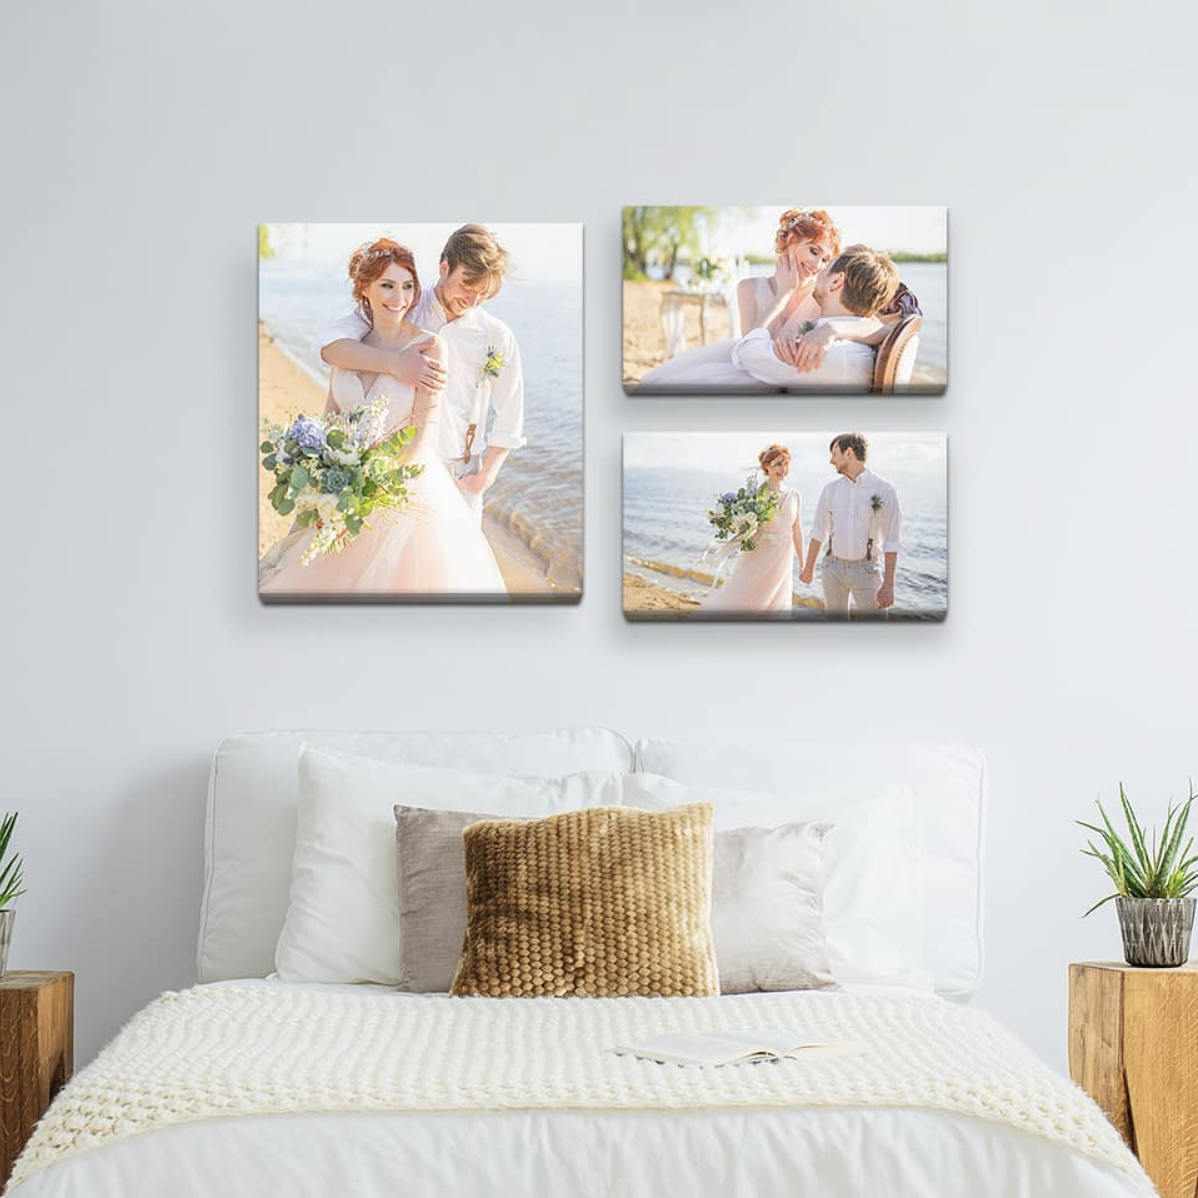 easy-canvas-wedding-photos-printed